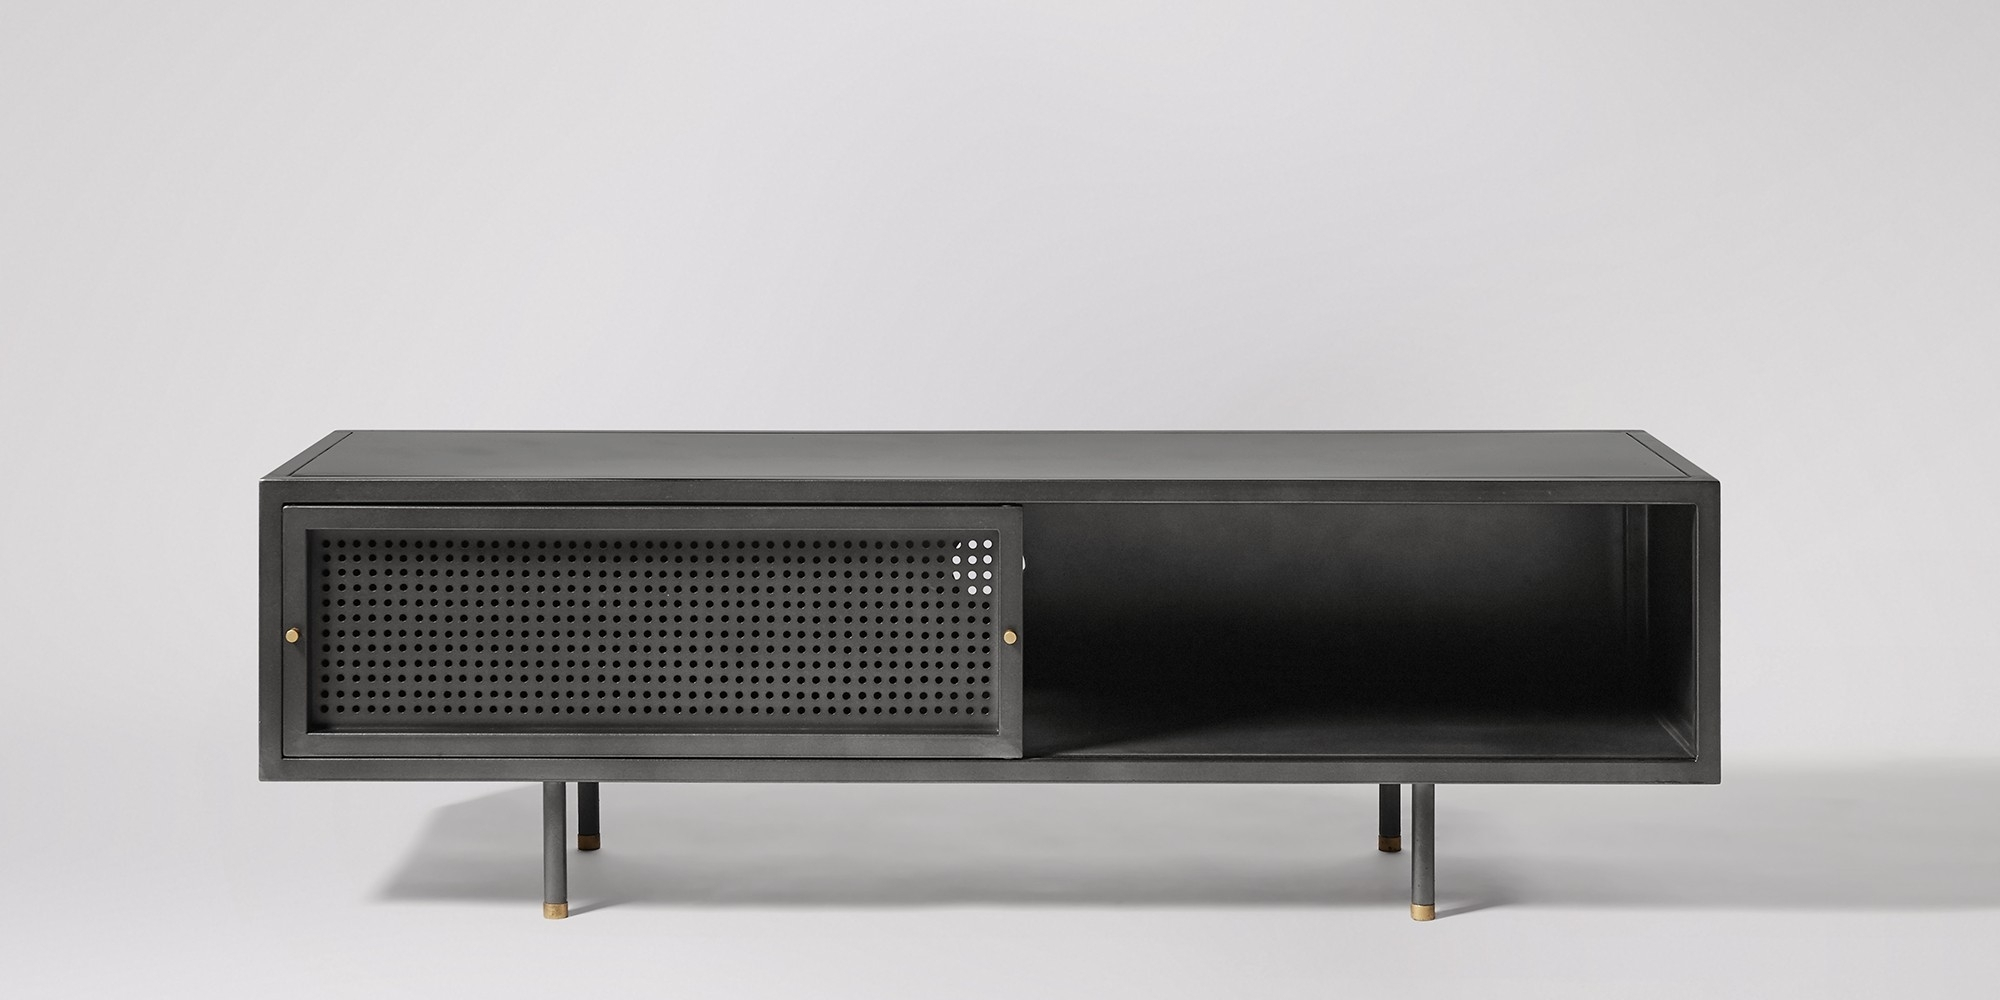 Sheffield Gunmetal & Brass Media Unit | Swoon Editions Pertaining To Most Recently Released Gunmetal Perforated Brass Sideboards (#19 of 20)